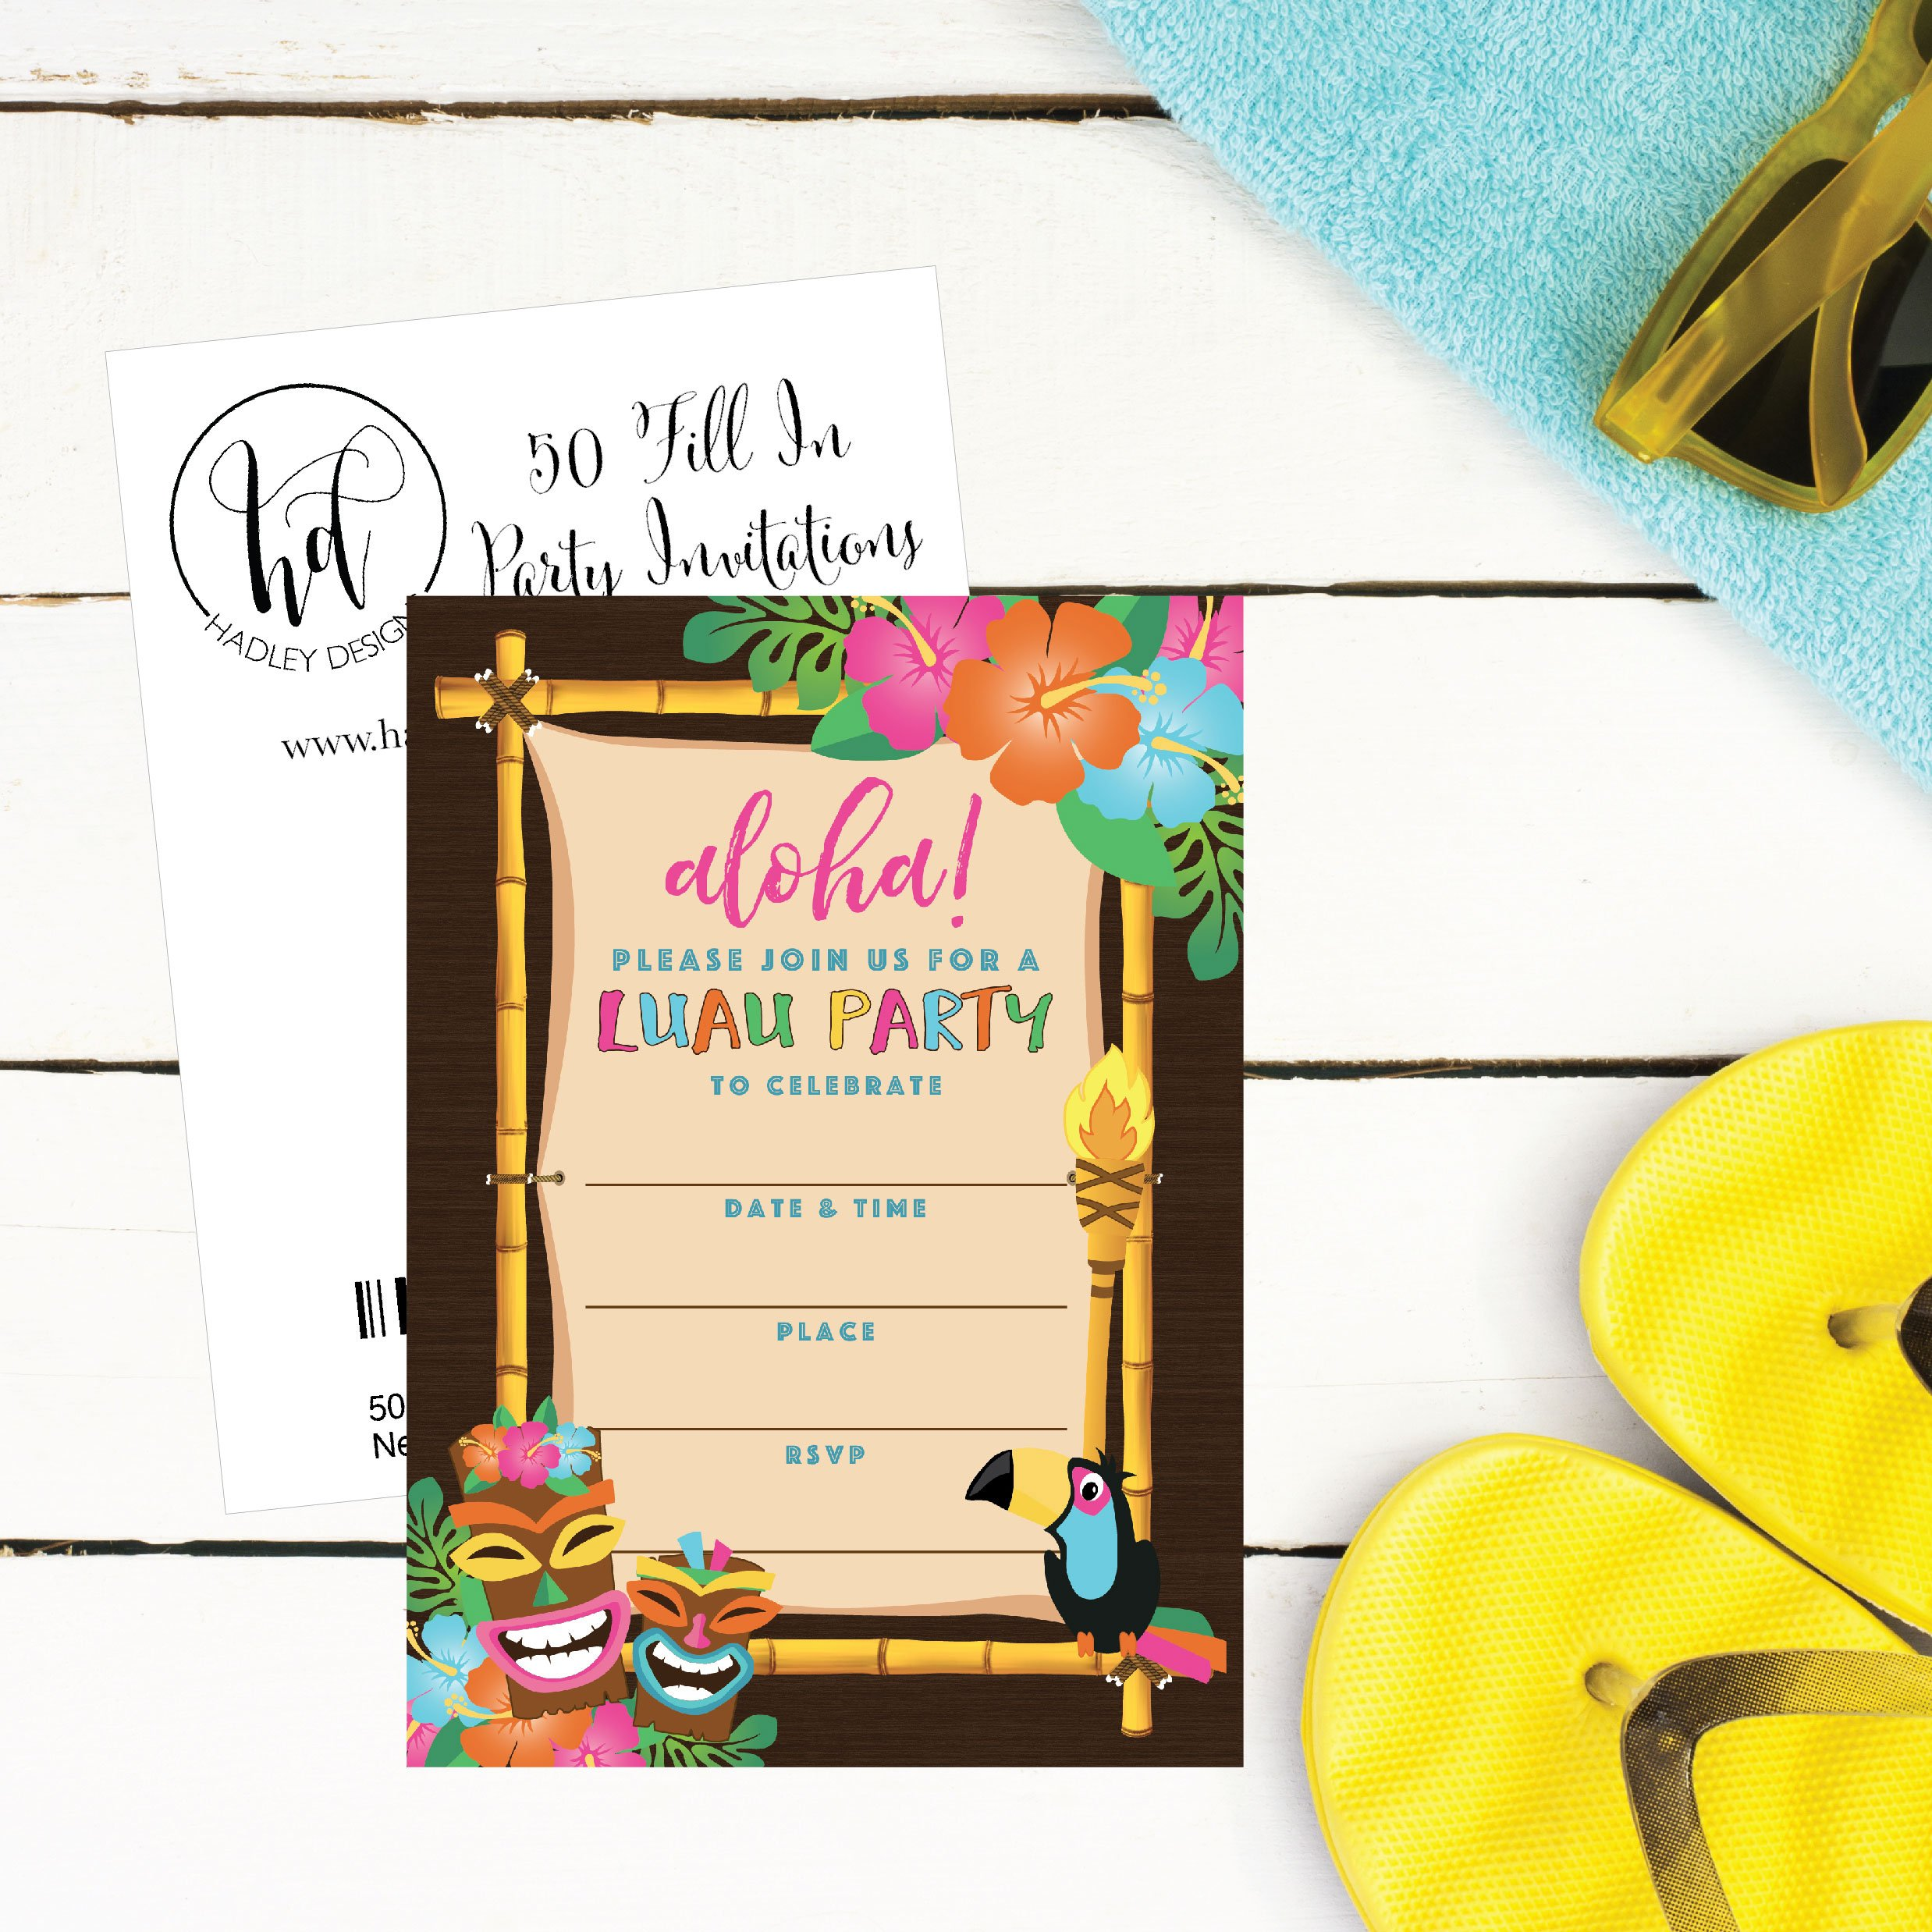 50 Tiki Hawaiian Luau Summer Swim Pool Party Invitations for Children, Kids, Teens & Adults, Flower Summertime Birthday Cookout Invitation Cards, Boys & Girls Floral Family Reunion BBQ Fill In Invites by Hadley Designs (Image #2)